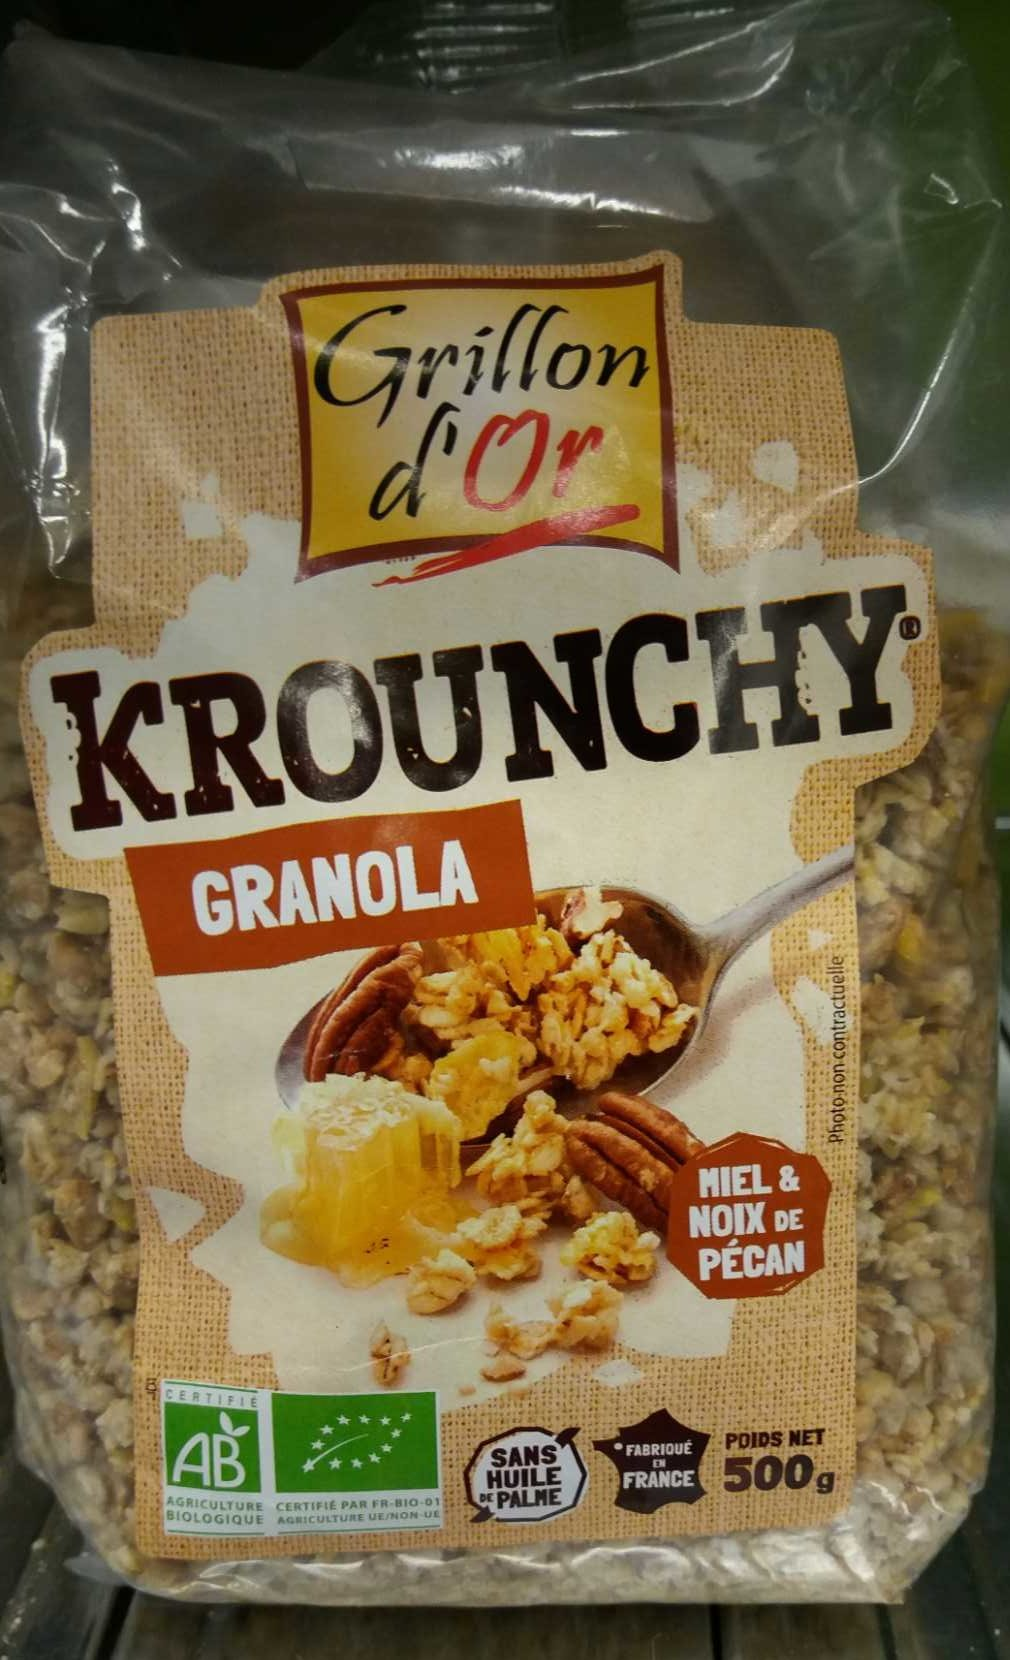 krounchy granola miel noix de p can grillon d 39 or 500 g. Black Bedroom Furniture Sets. Home Design Ideas